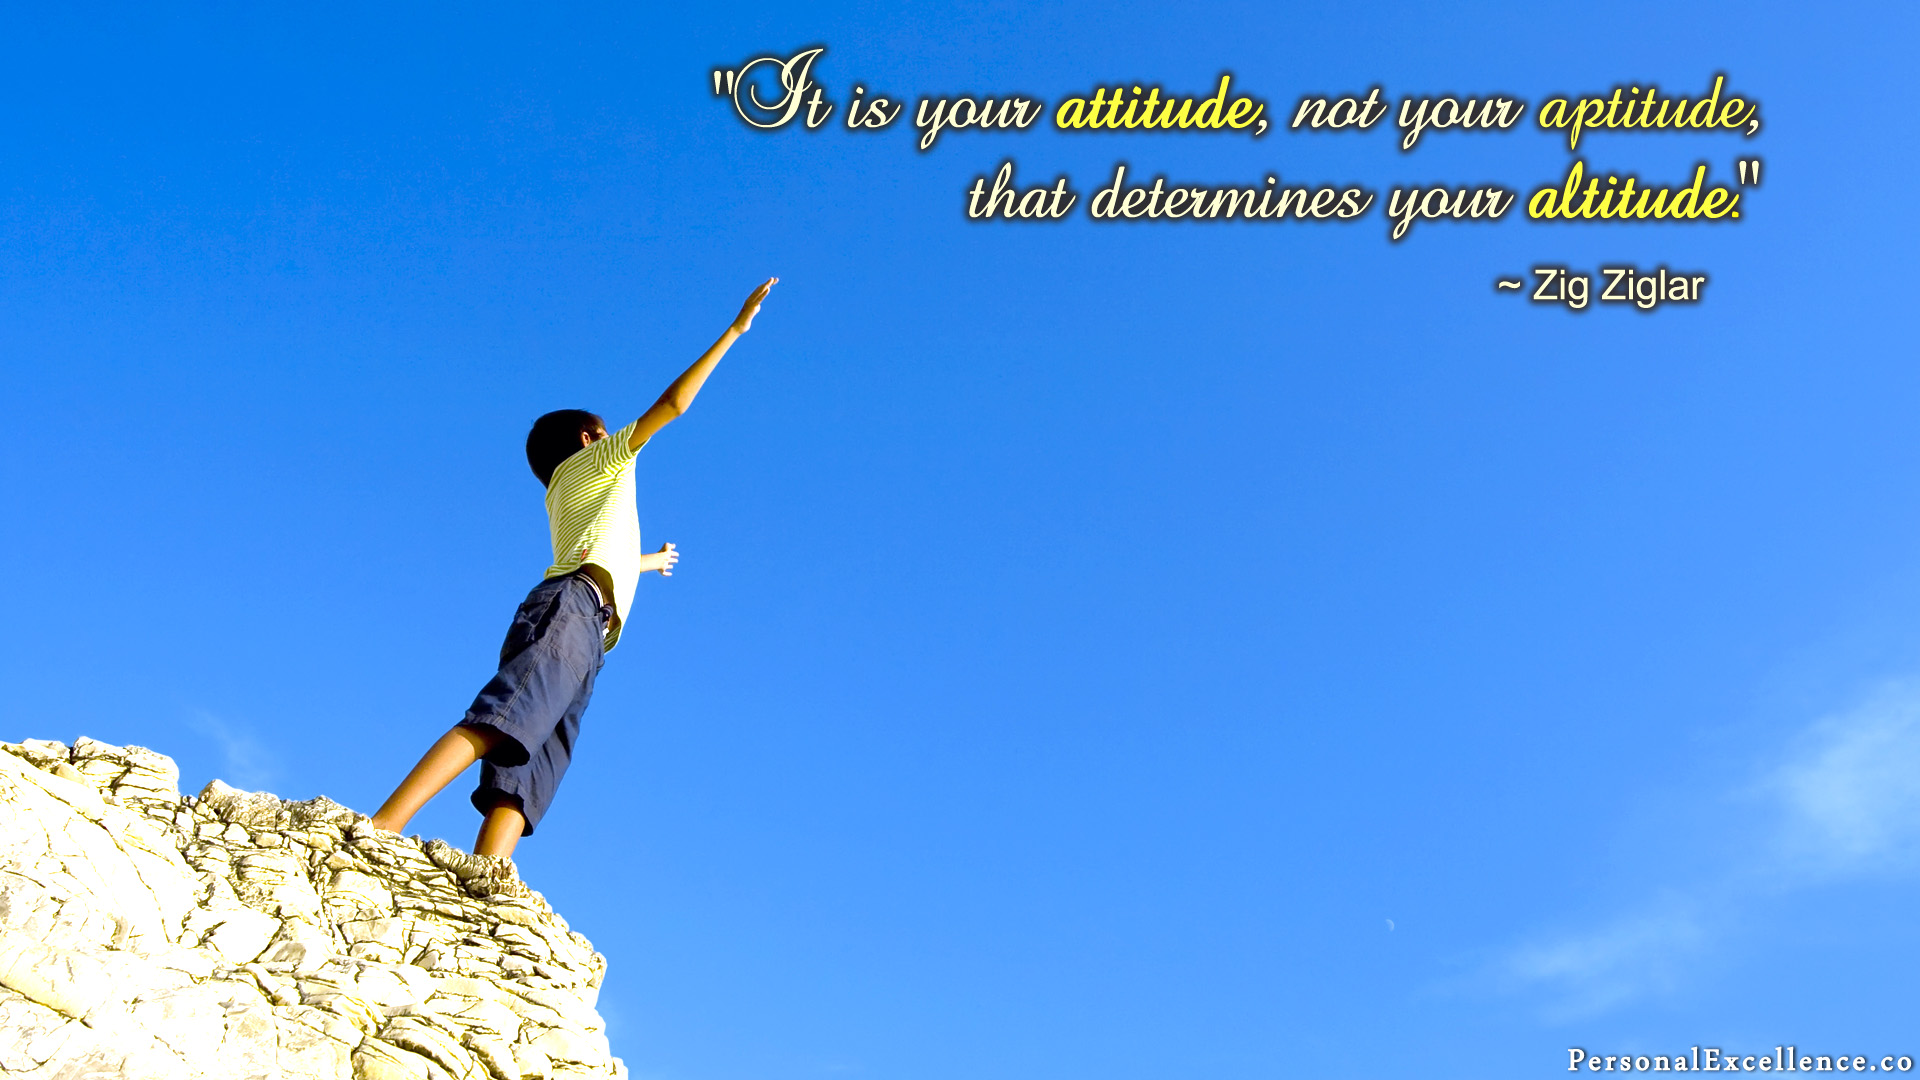 Attitude Quotes Wallpapers Hd: 15 Beautiful, Inspirational Wallpapers For Your Desktop